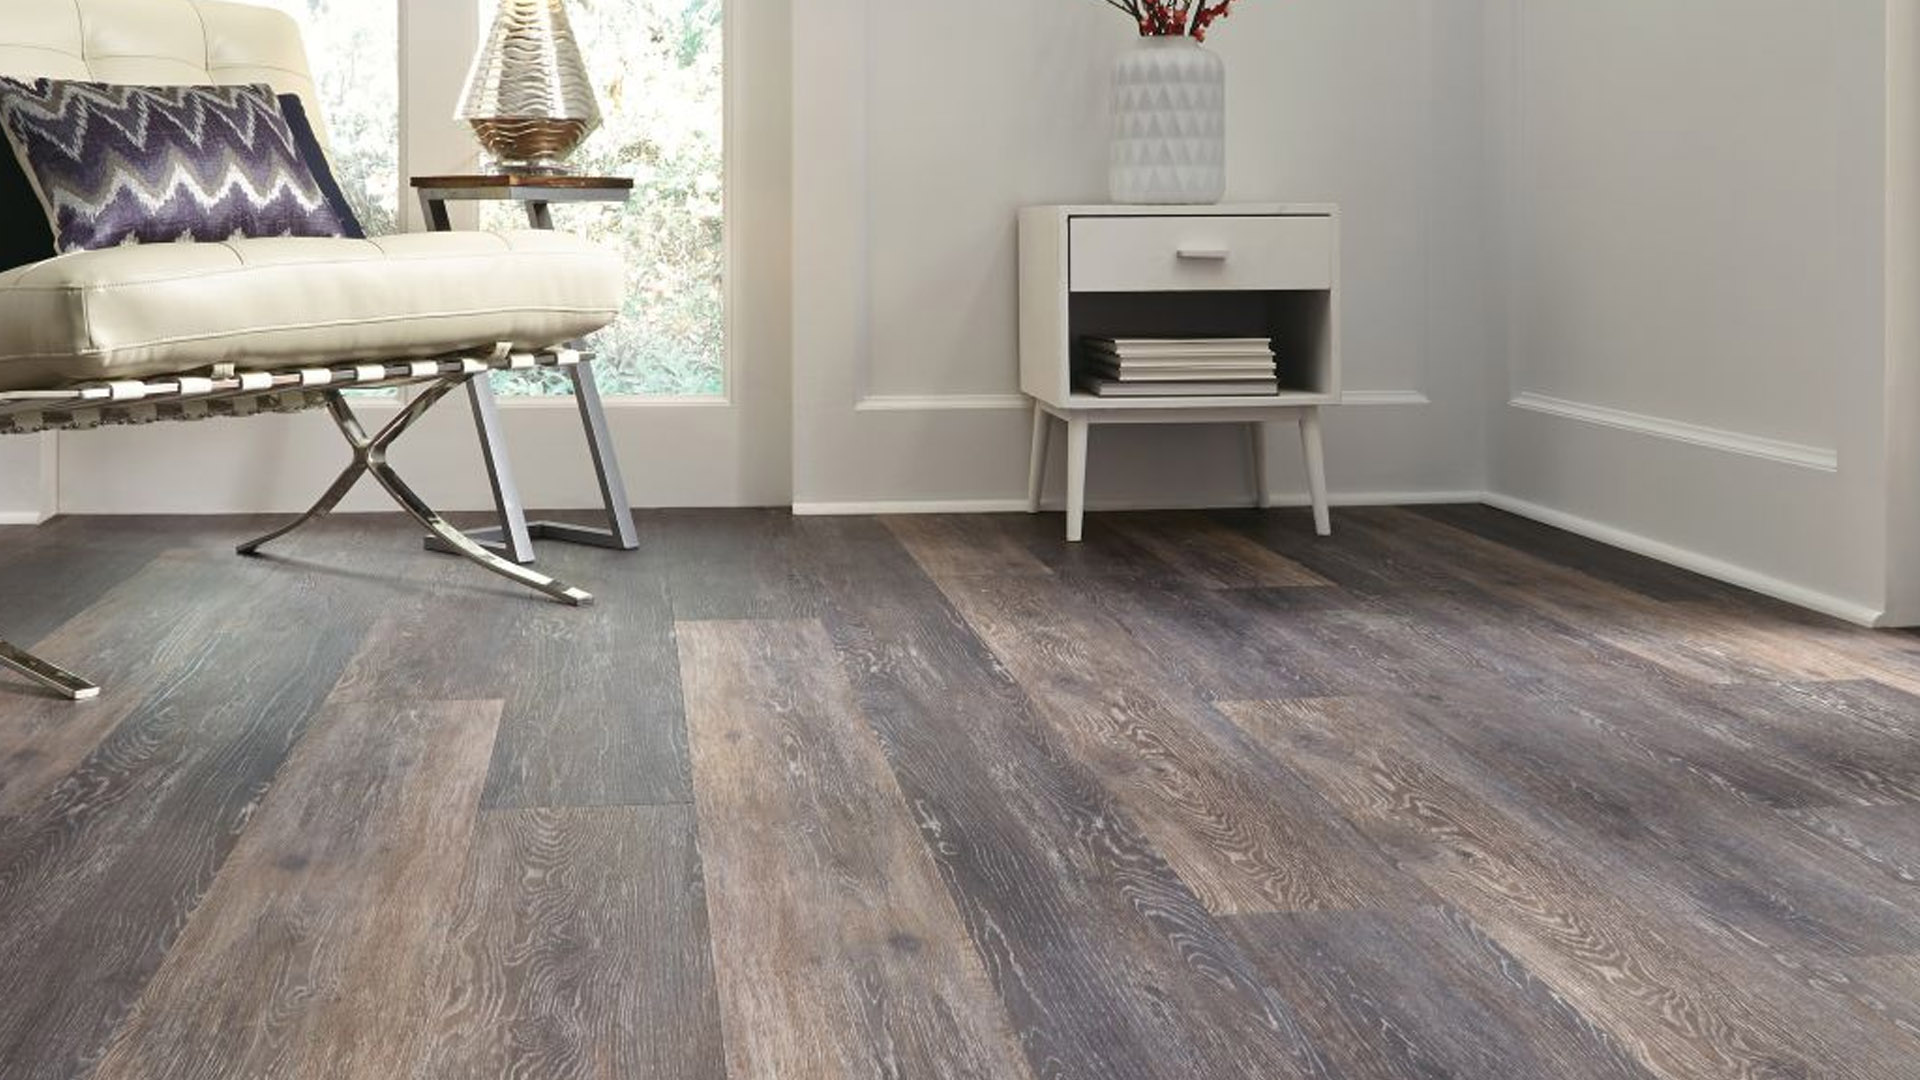 CARPETS & VINYL FLOORING FROM £4.99 m²